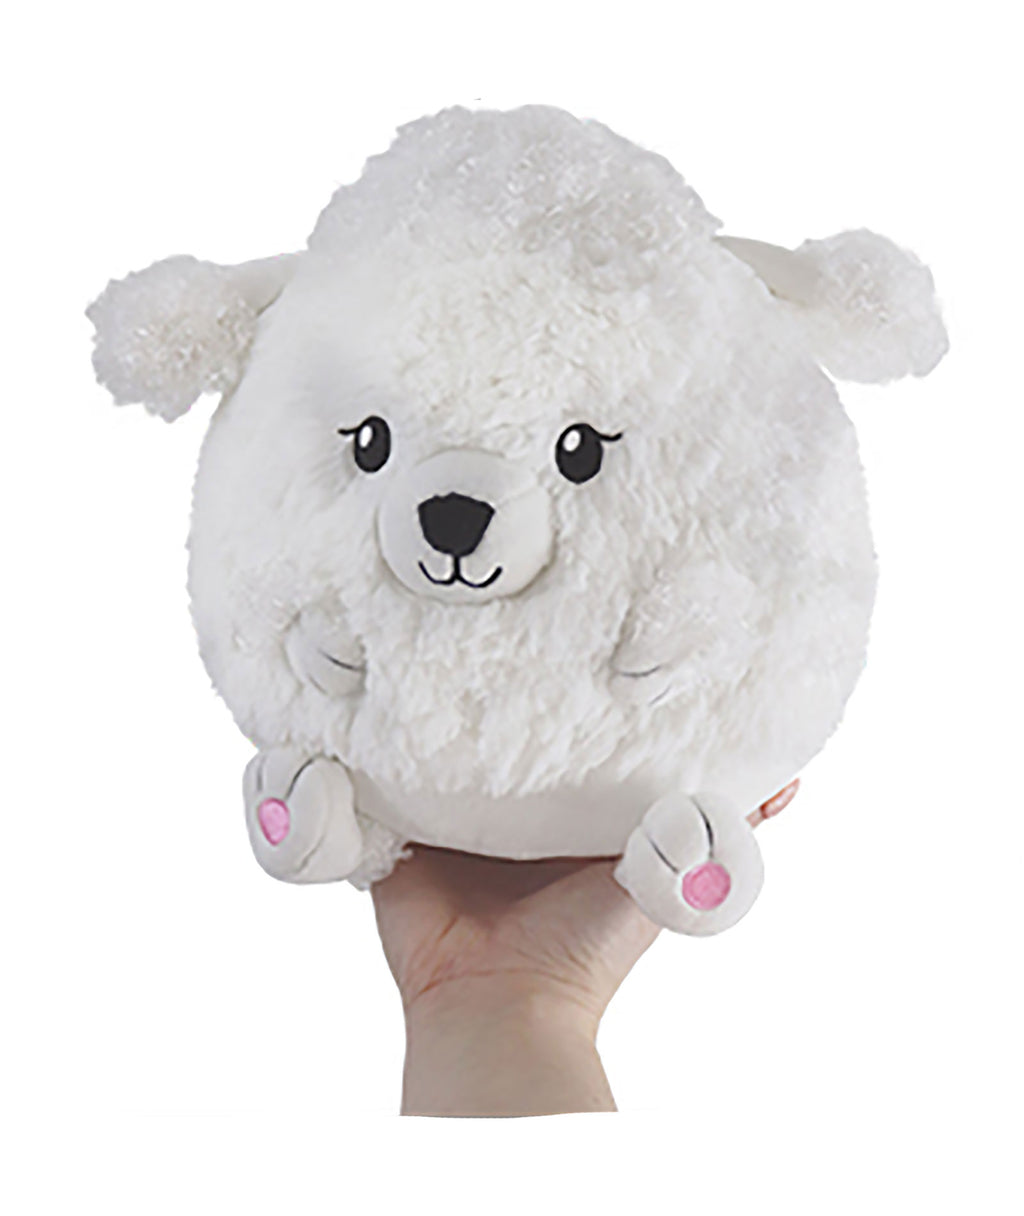 Squishable Mini Poodle